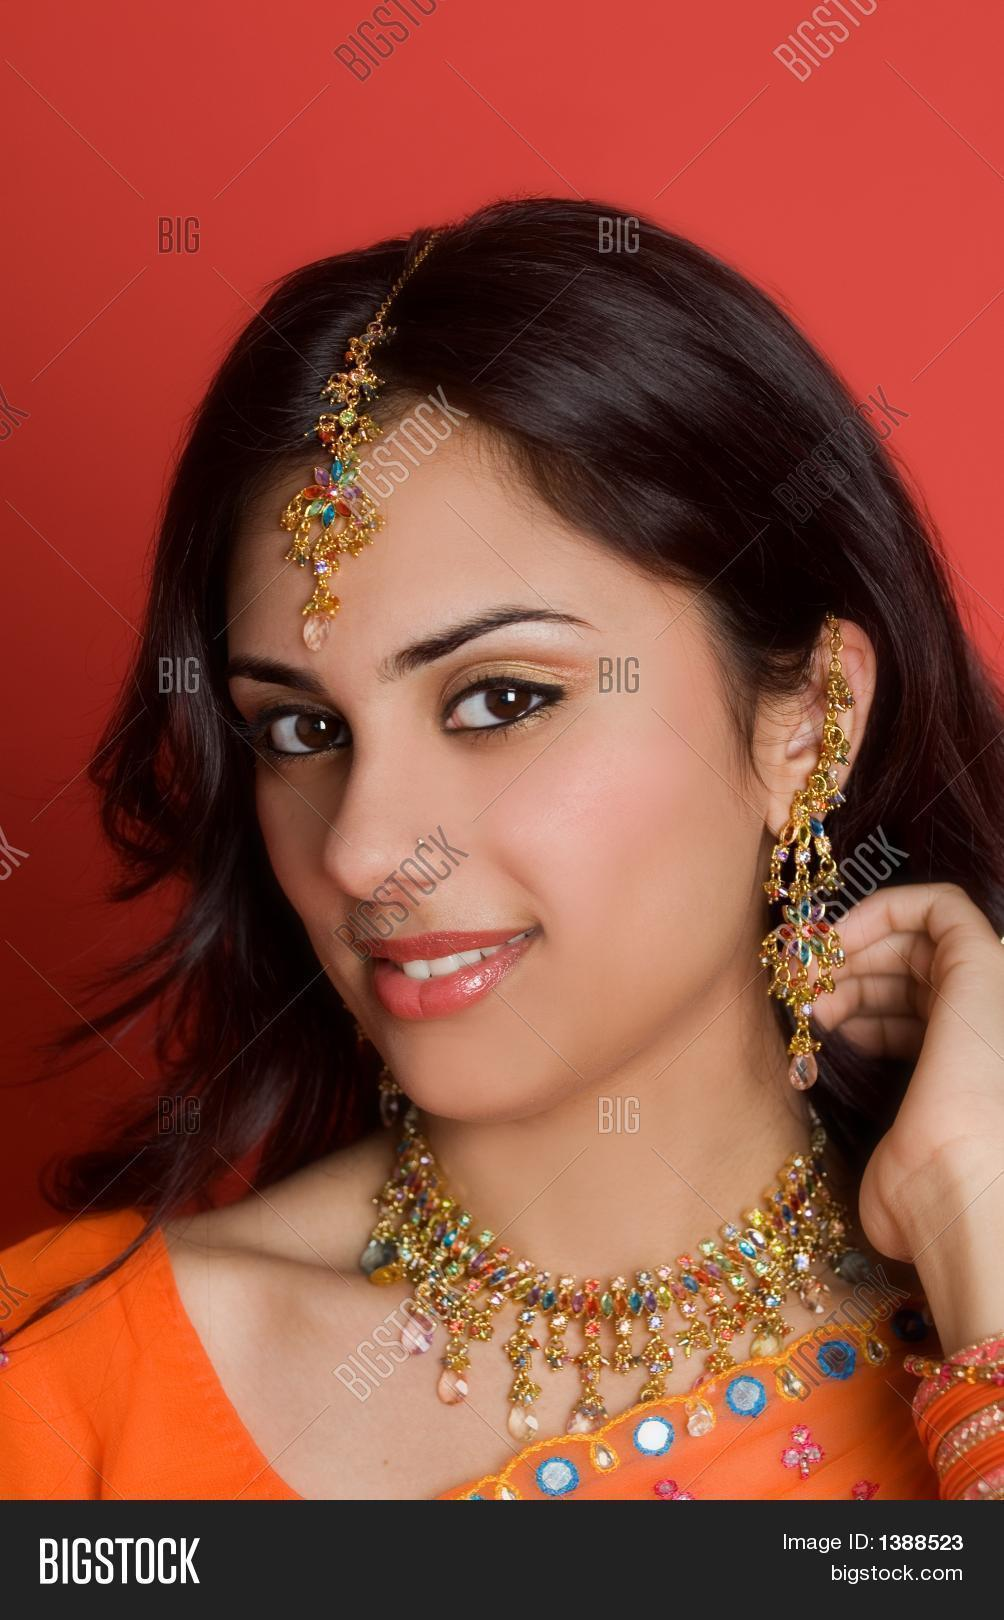 grasston hindu single women Indiamatchcom is designed for india dating and to bring indian singles together join indiamatch indian dating service for single indian men and single indian women.